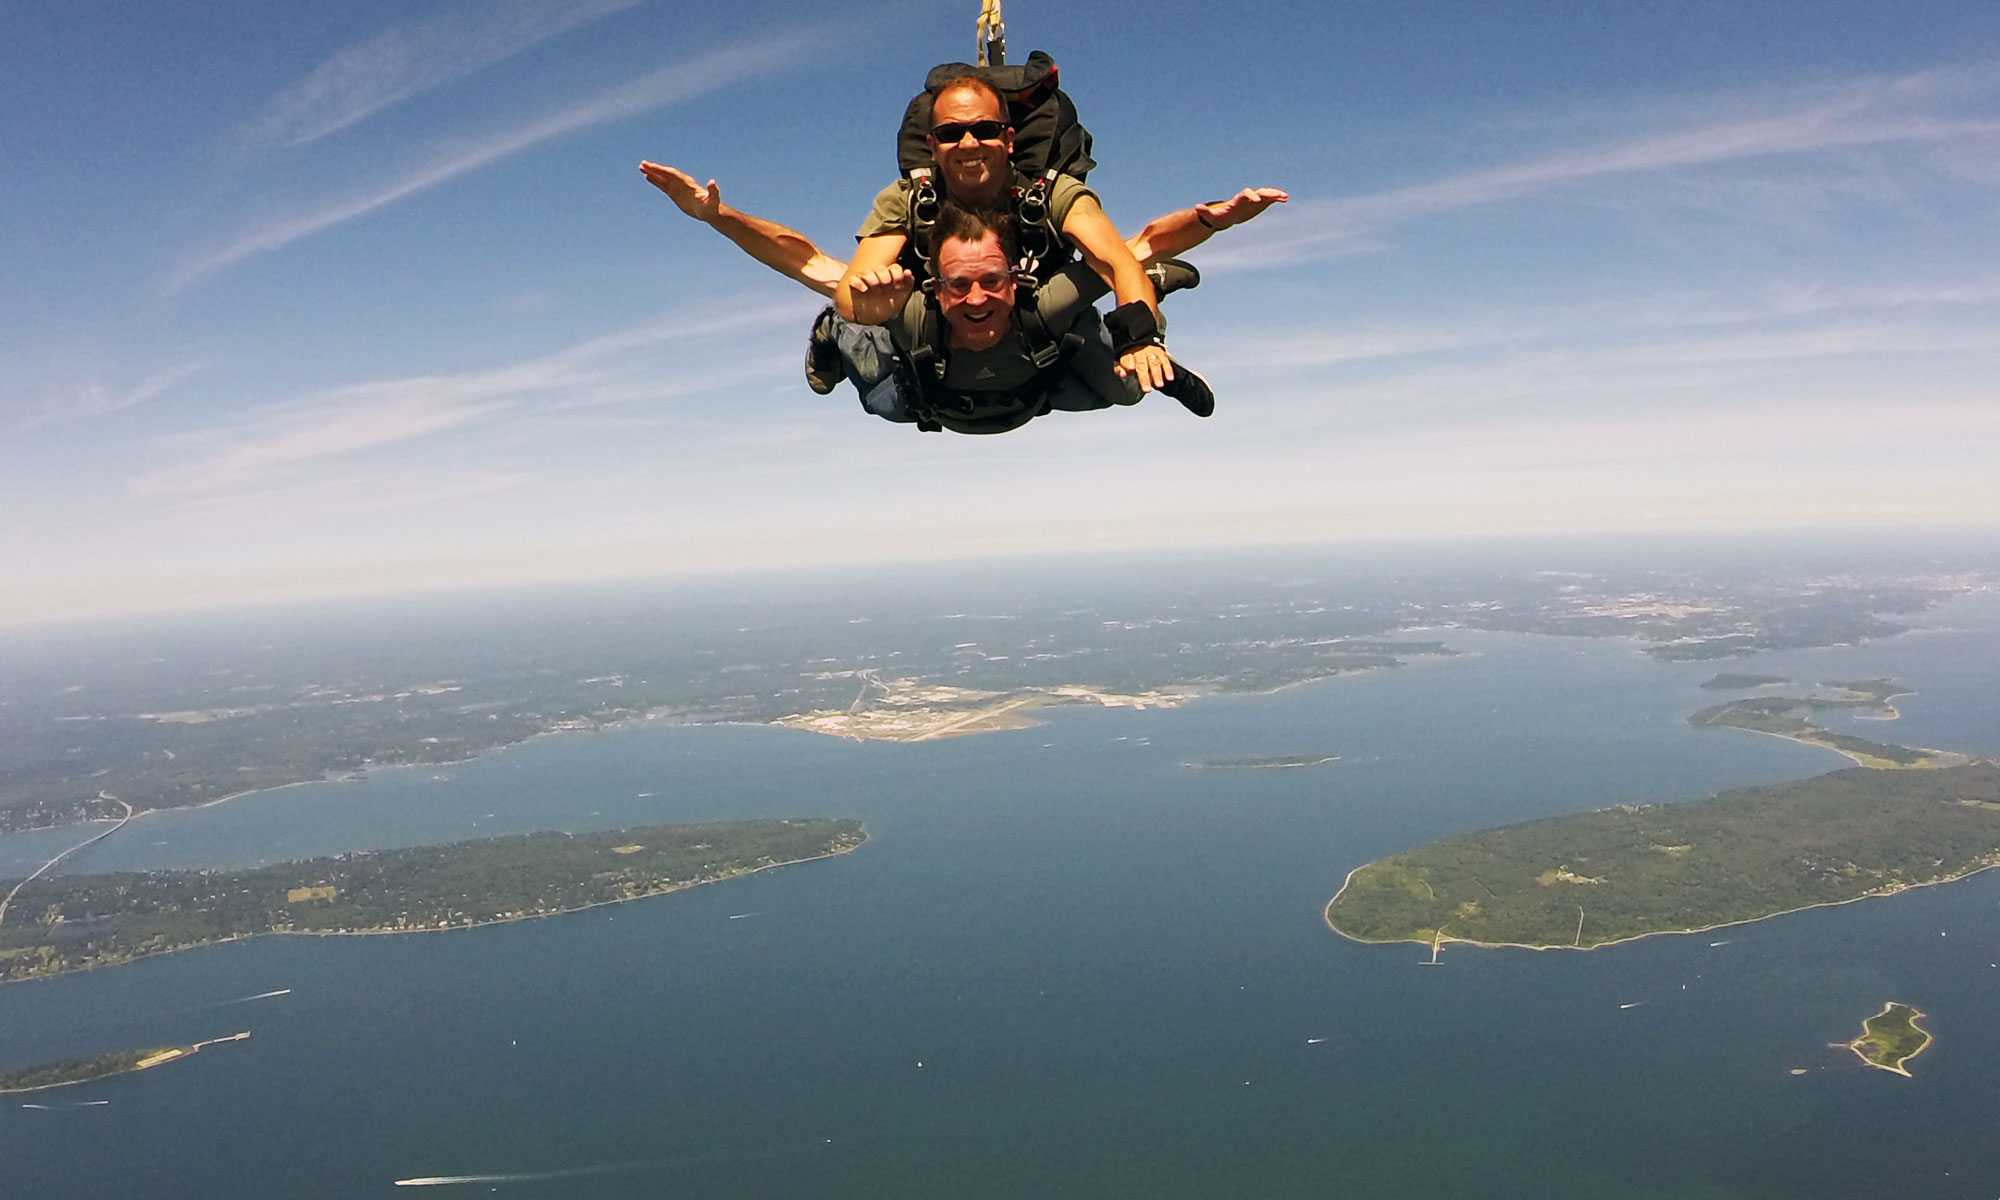 Skydive Newport | Skydiving Boston & New England